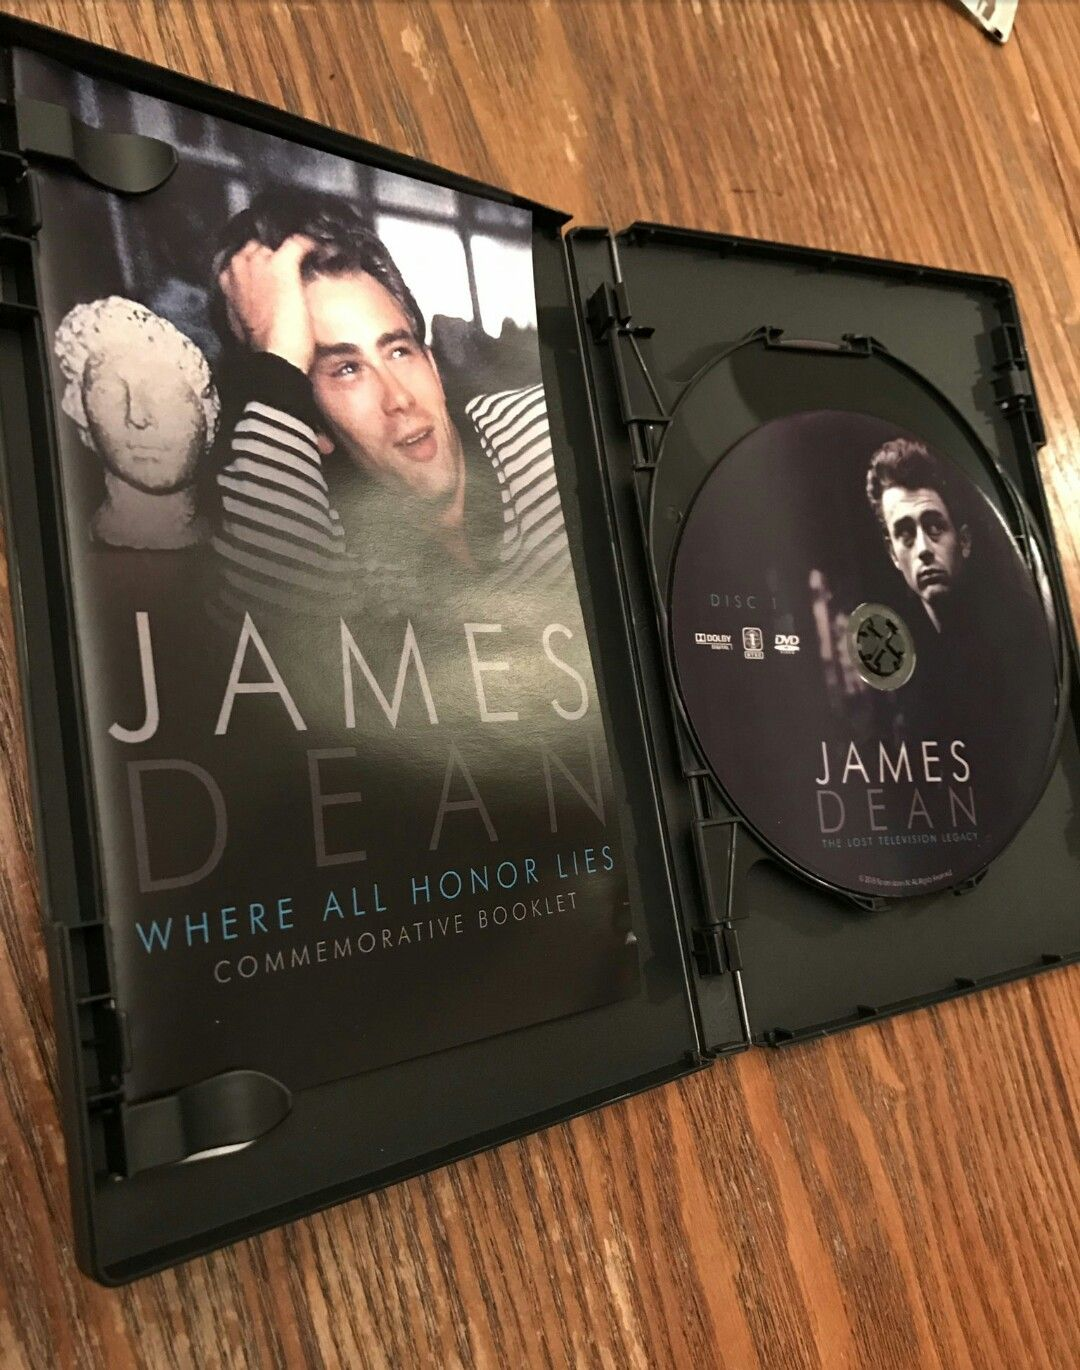 James Dean-The lost television legacy DVD's